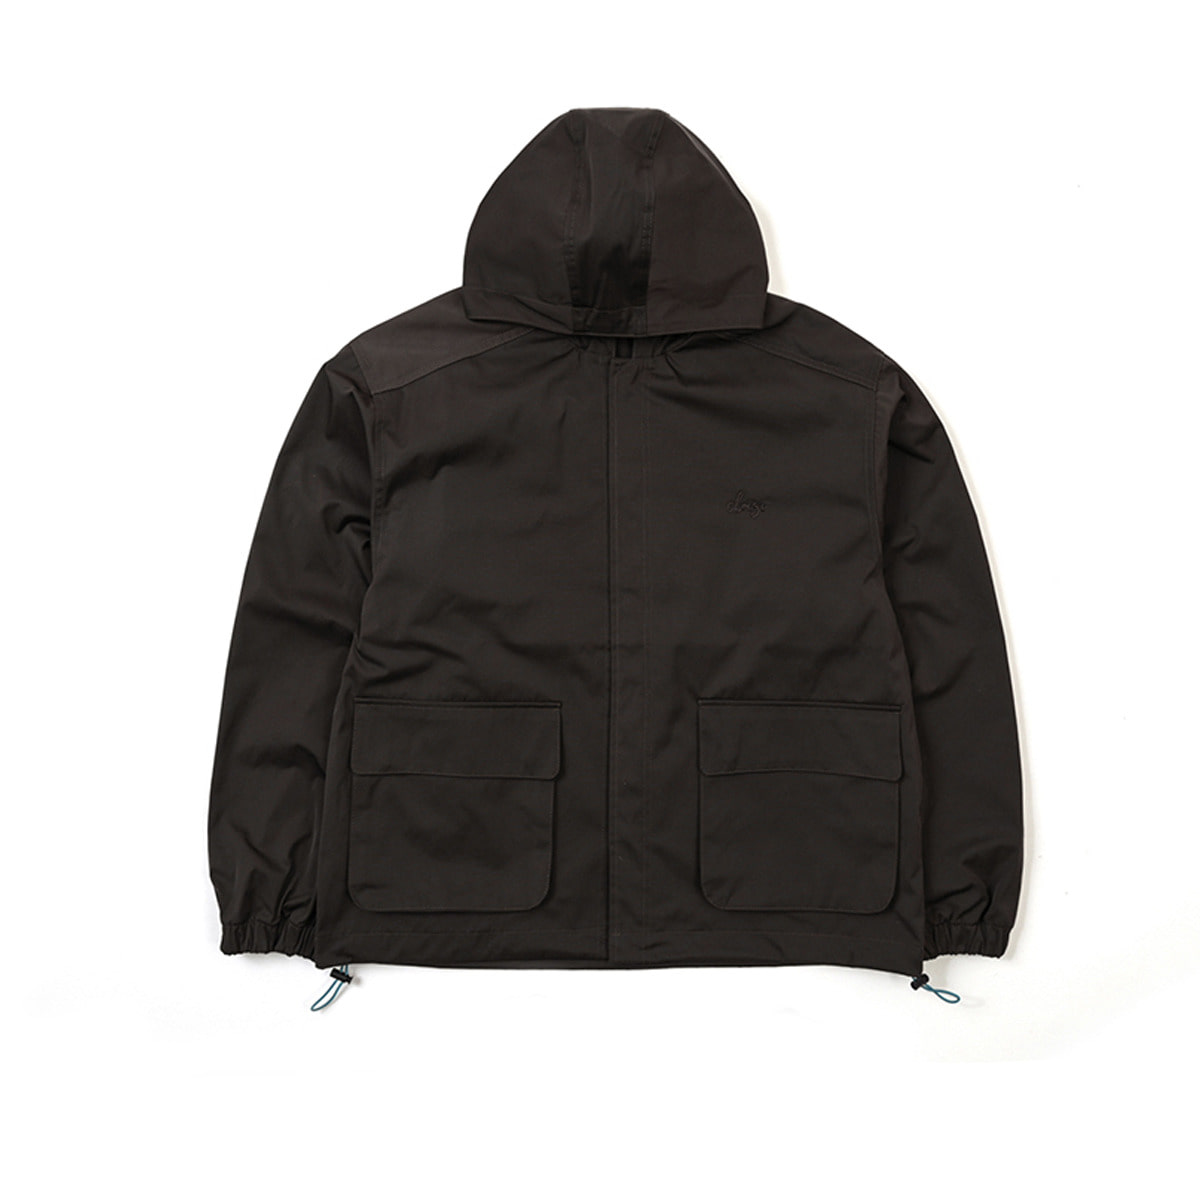 Choisi Wind Parka, Brown